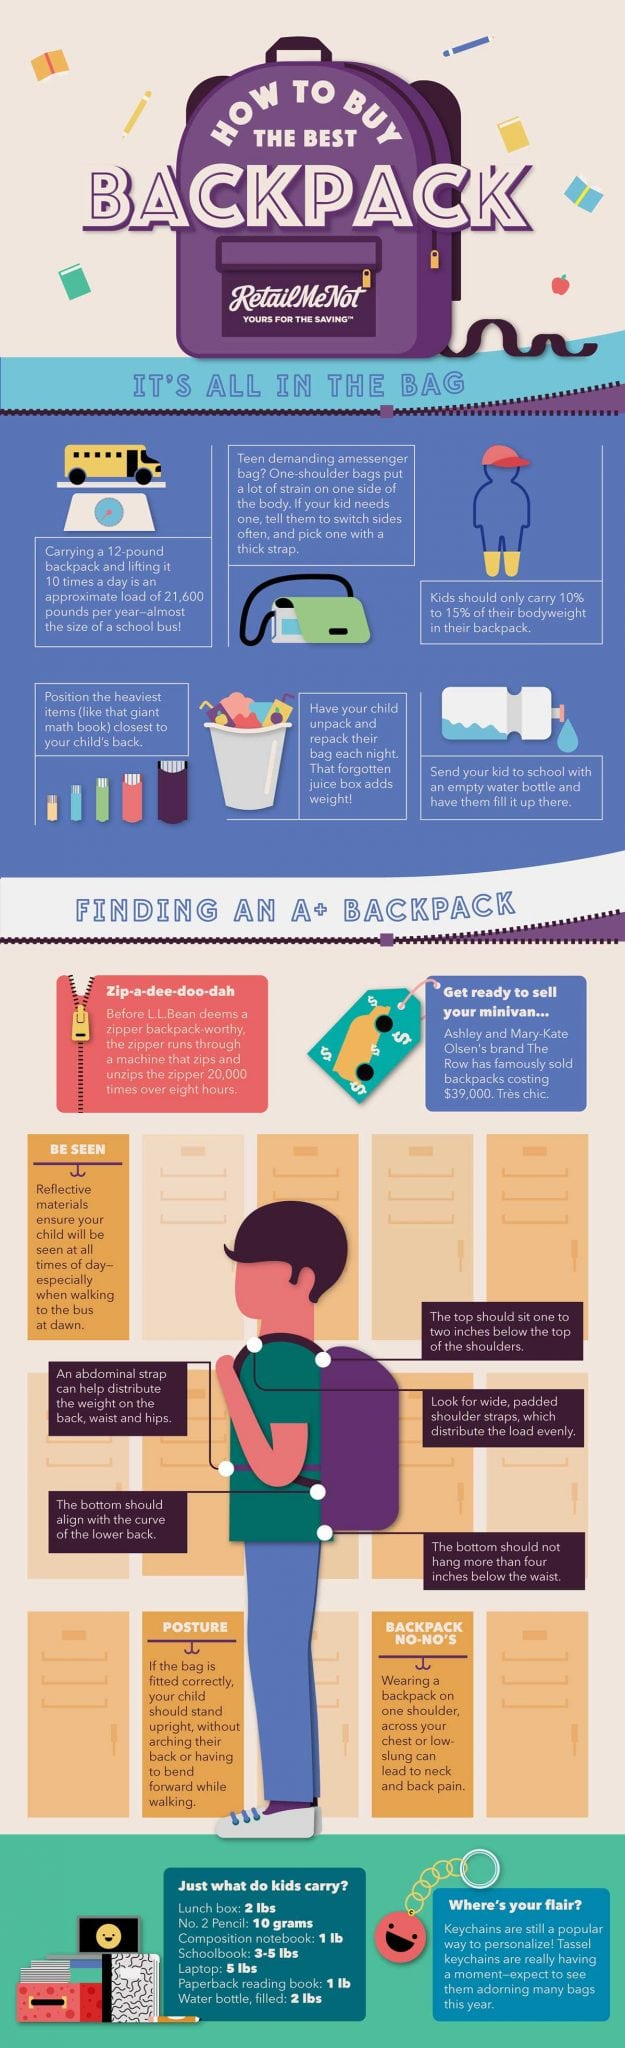 How to Buy a Backpack